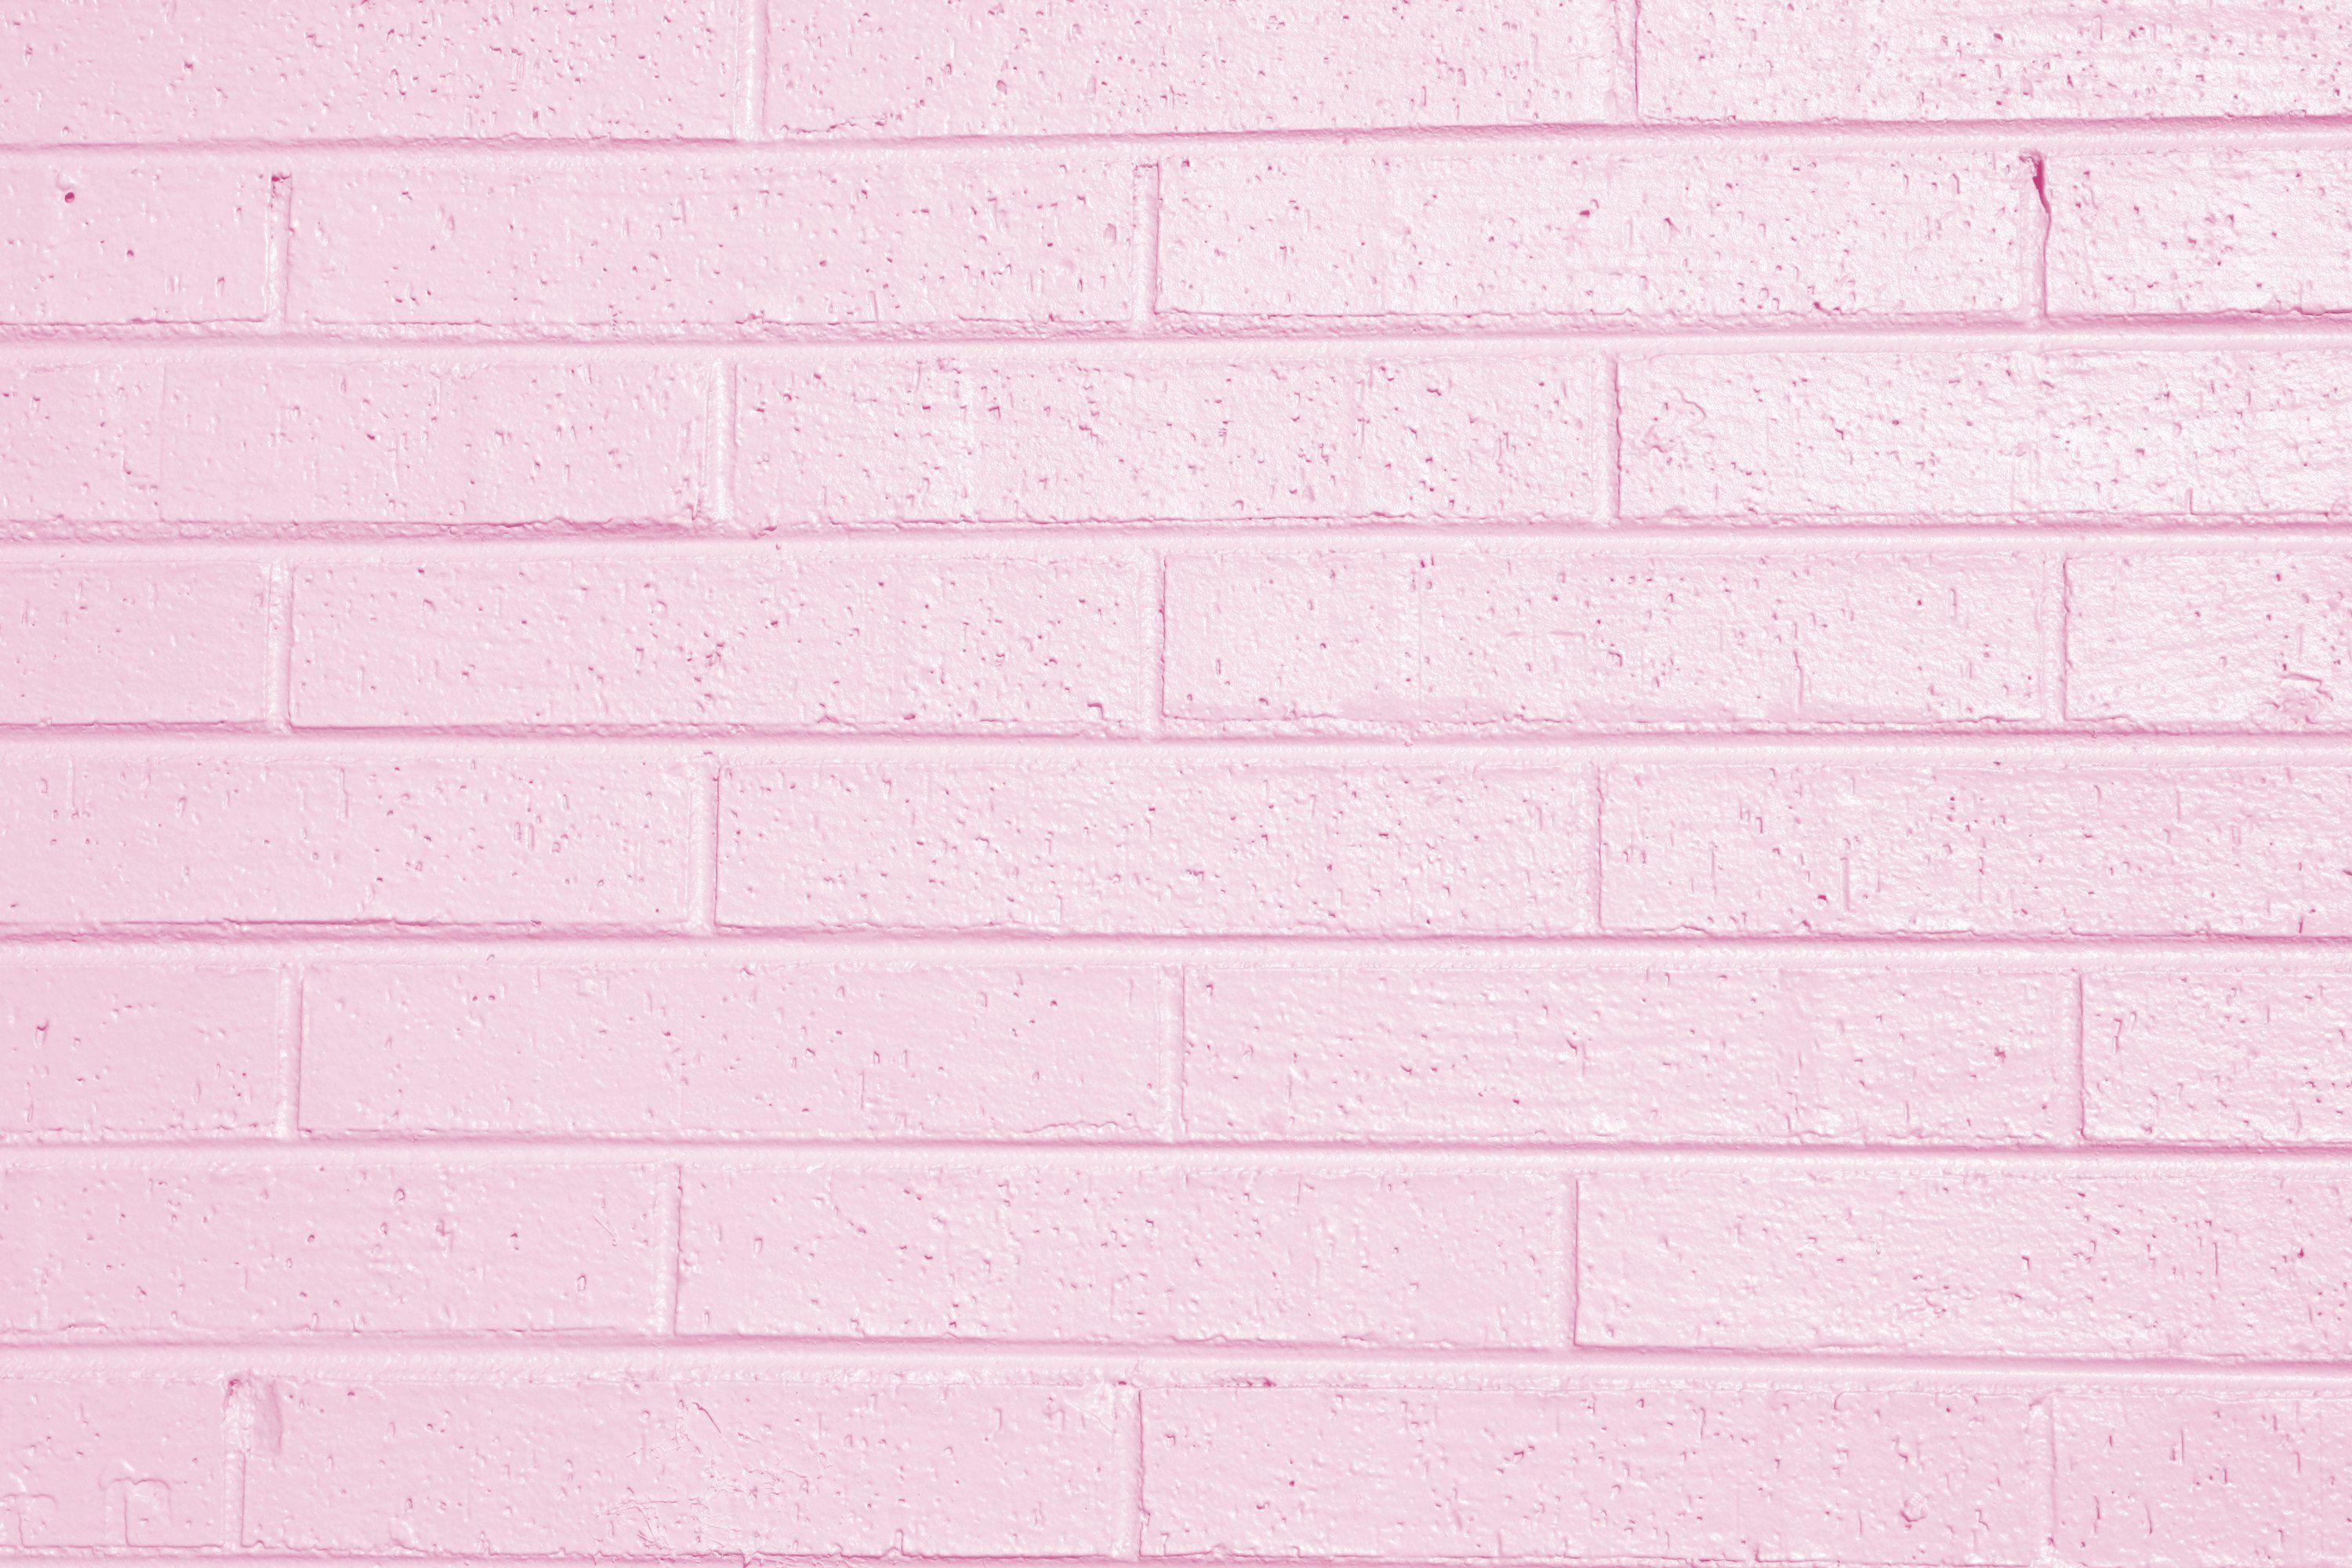 Aesthetic Background Light Pink